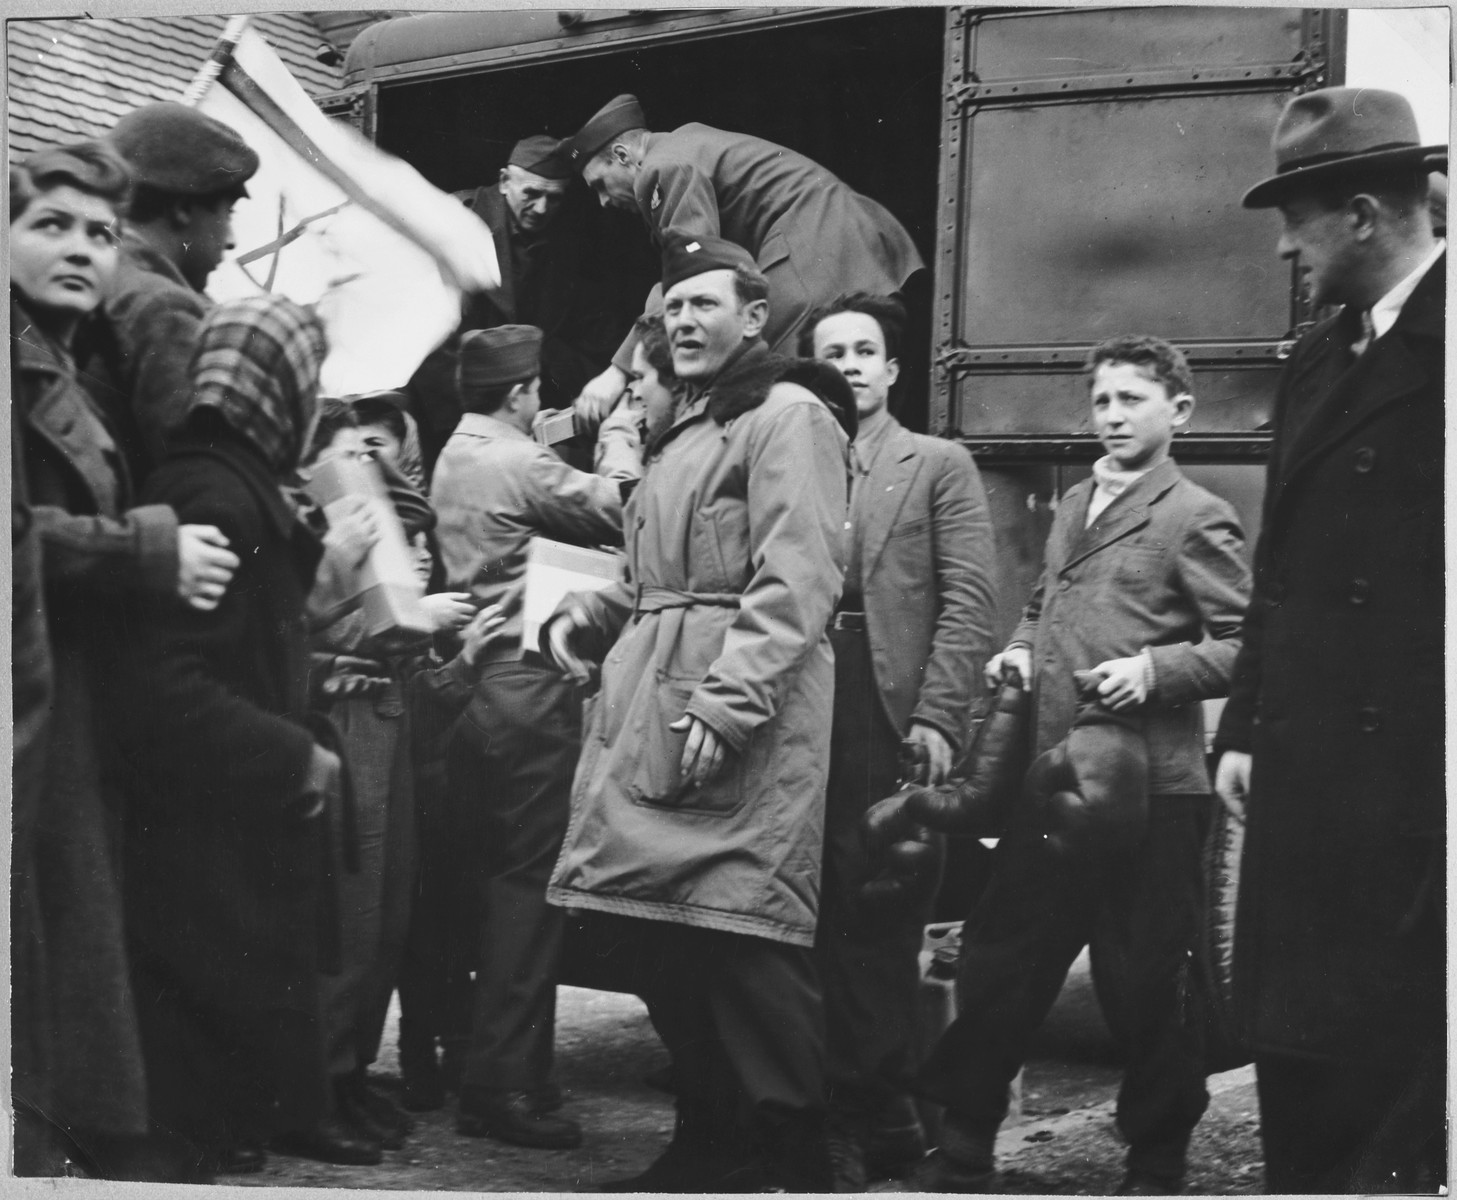 Relief workers in the Foehrenwald displaced persons' camp unload supplies from a truck.